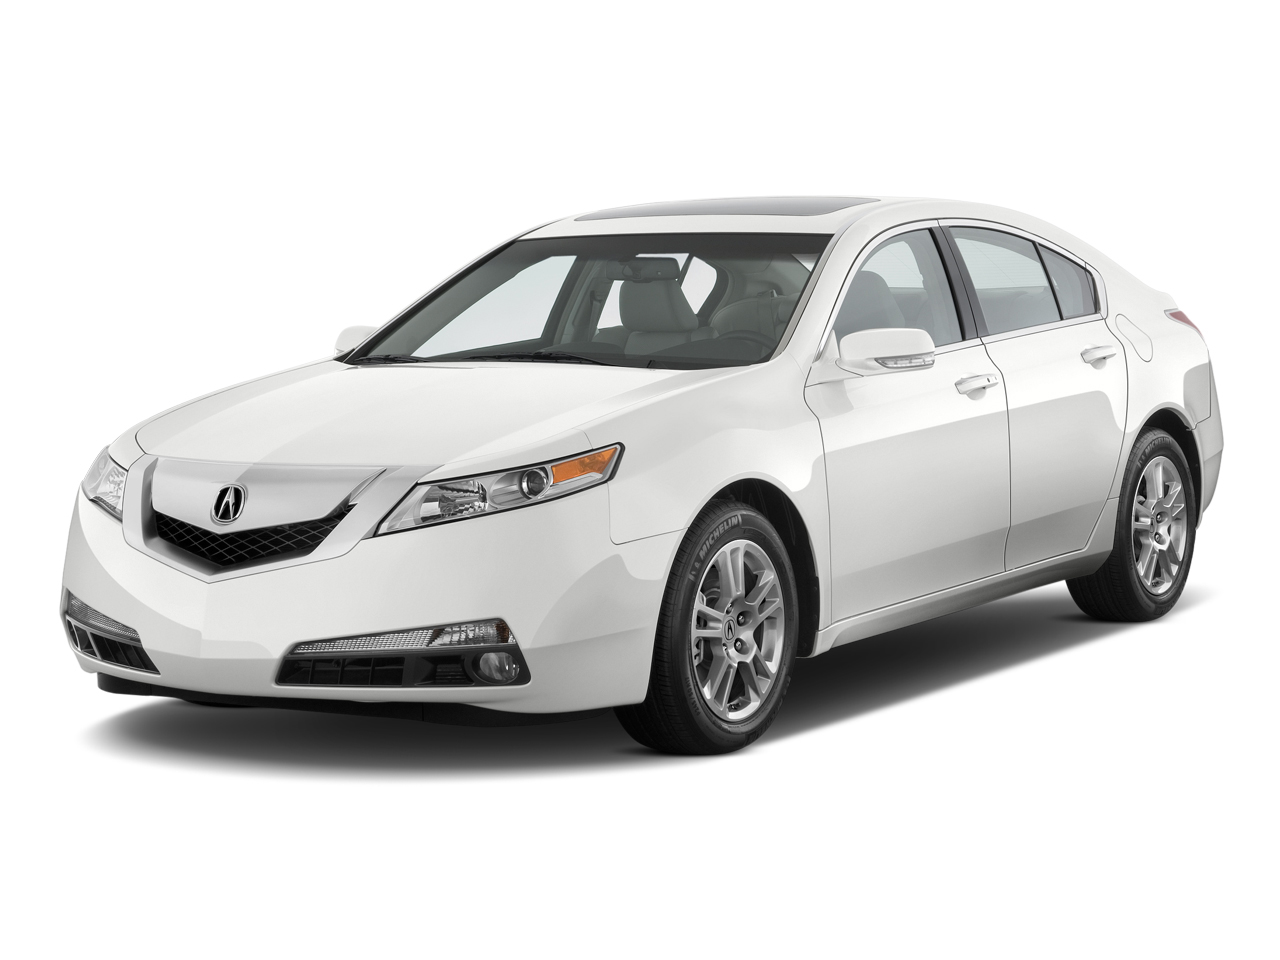 2011 Acura Tl Review Ratings Specs Prices And Photos The Car Connection